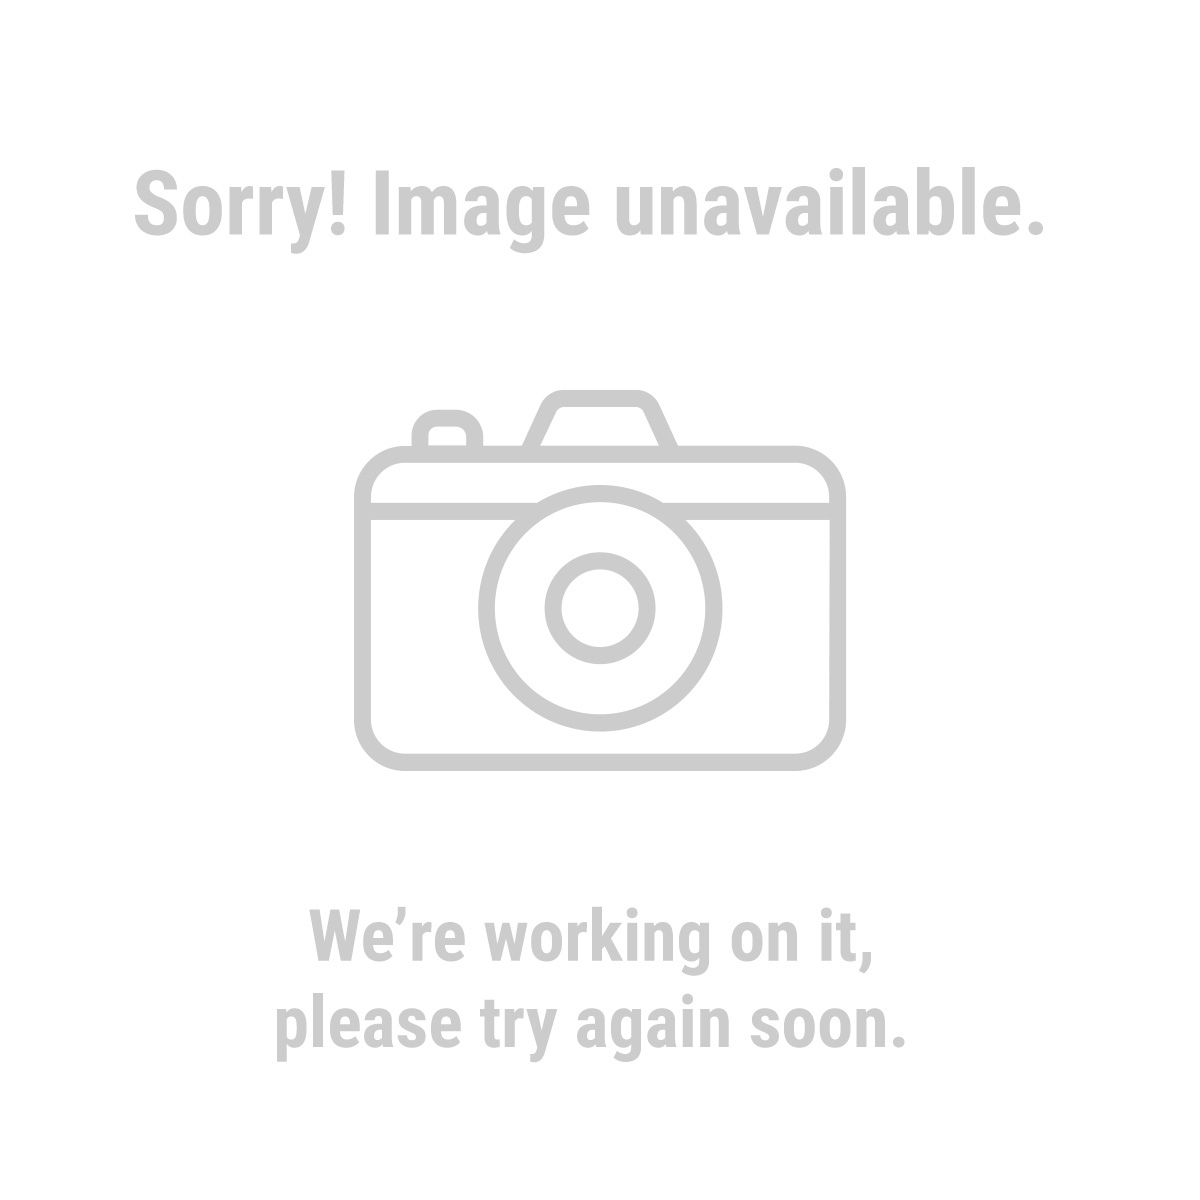 Finch & McClay 67063 4 Piece Paint Brush Set with Wood Handles